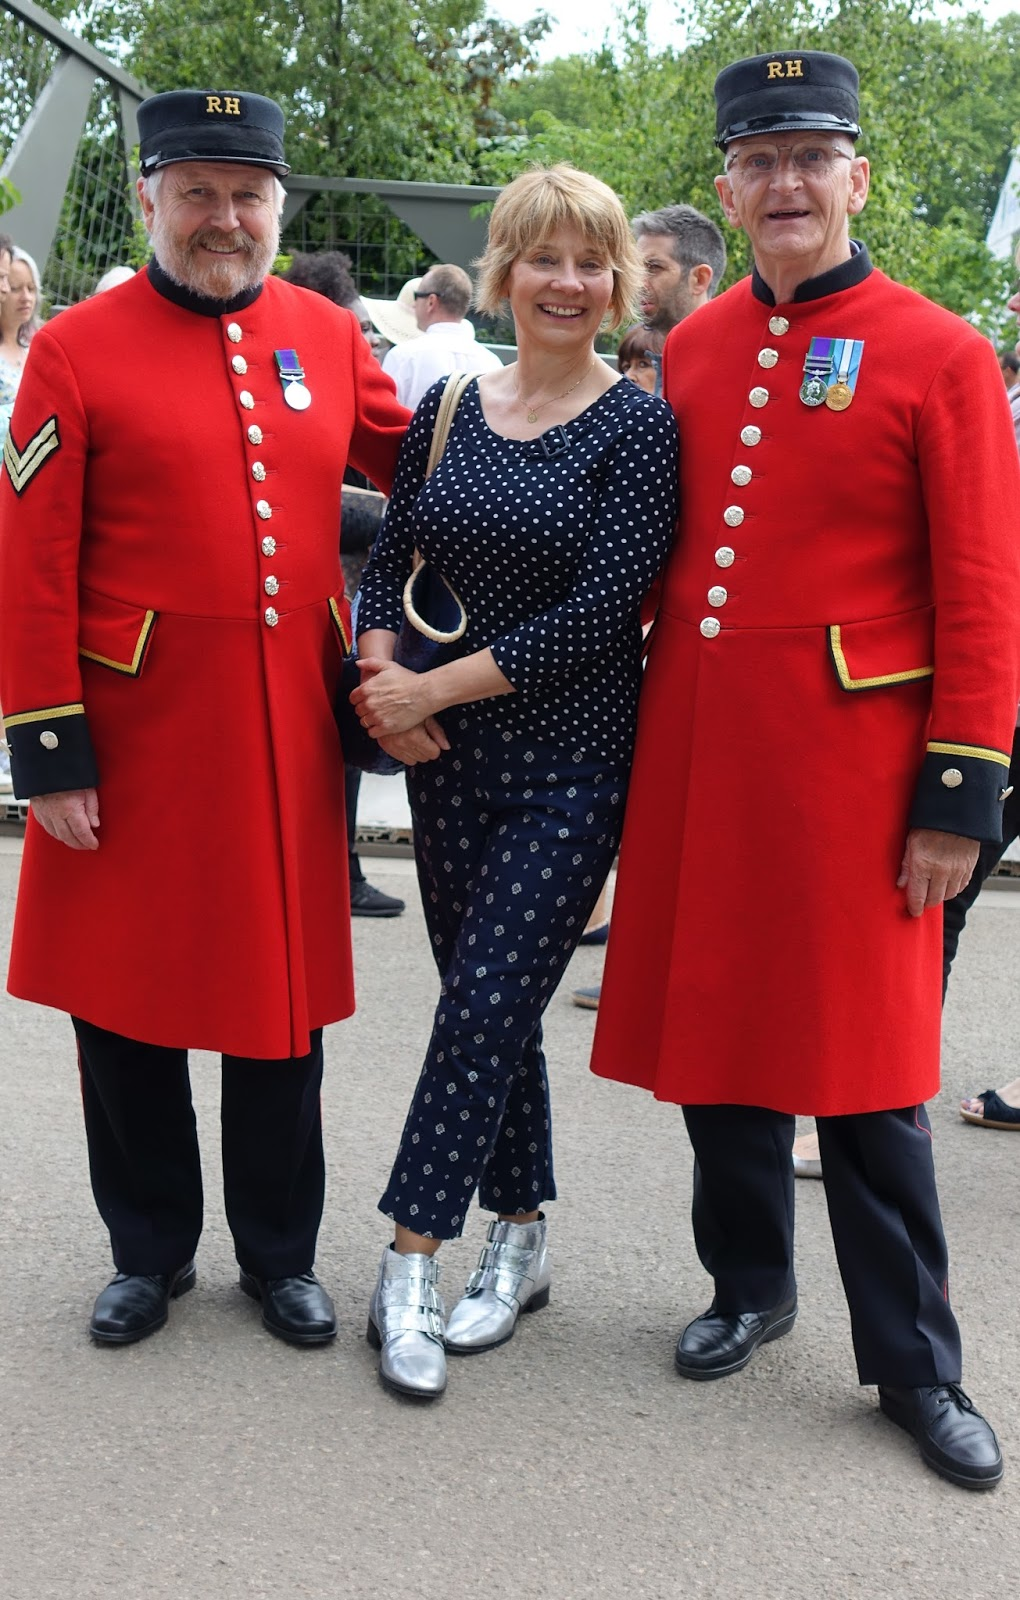 Wearing navy blue with silver, Gail Hanlon from Is This Mutton with two Chelsea Pensioners, Chelsea Flower Show 2017